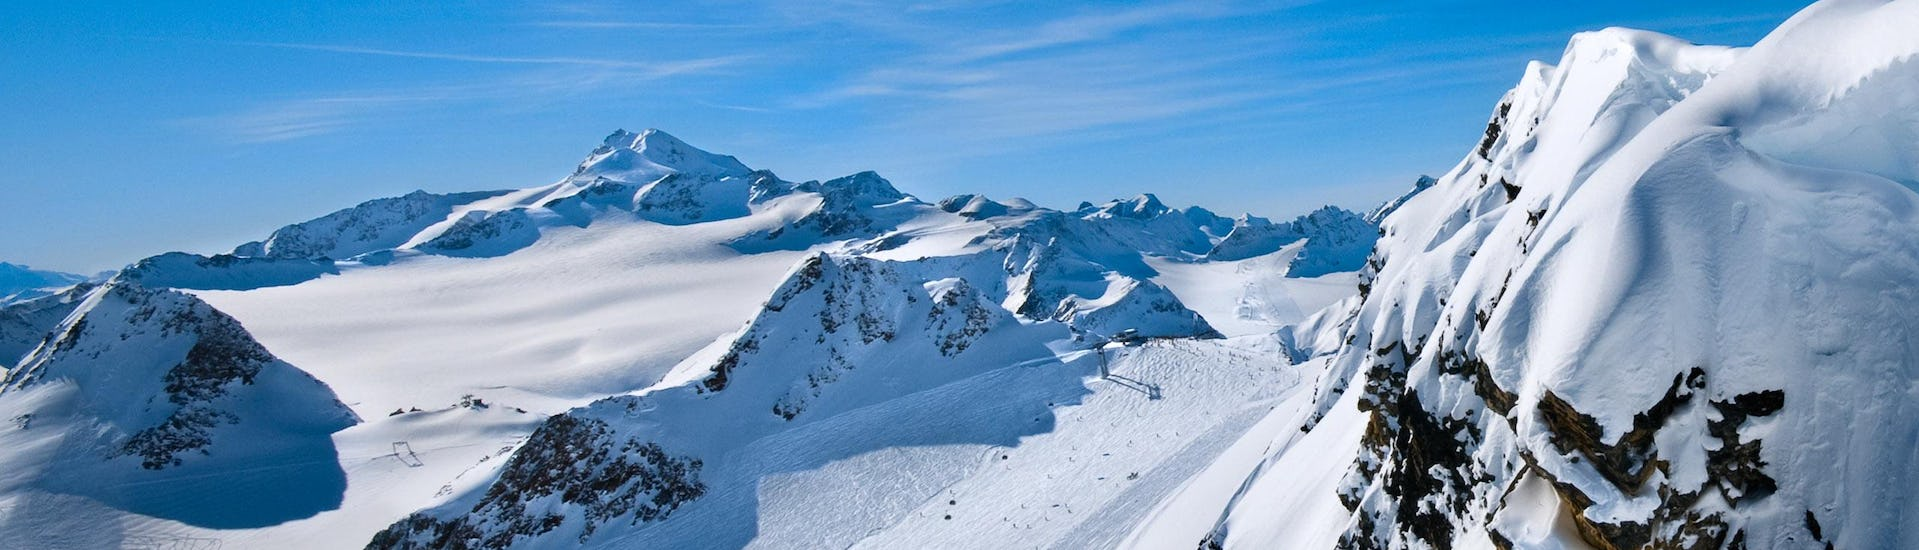 A view of a snowy mountain top in the ski resort of Söll, where ski schools gather to start their ski lessons.